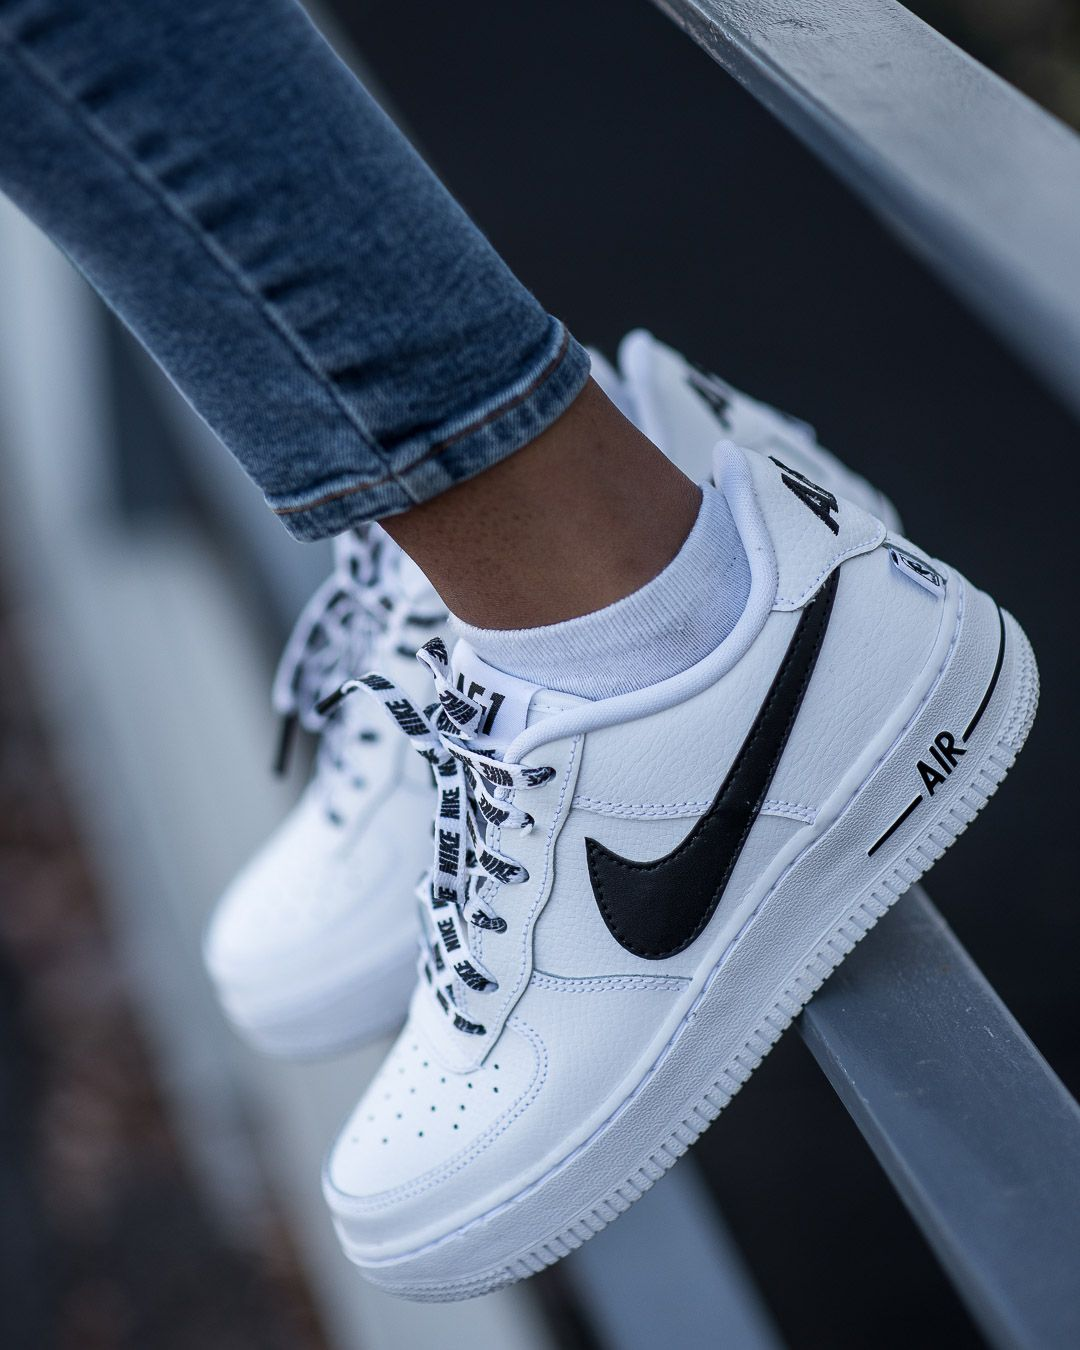 bb58d7dd9820 Nike Airforce 1: Sneakers of the Month | Shoes | Sneakers nike ...